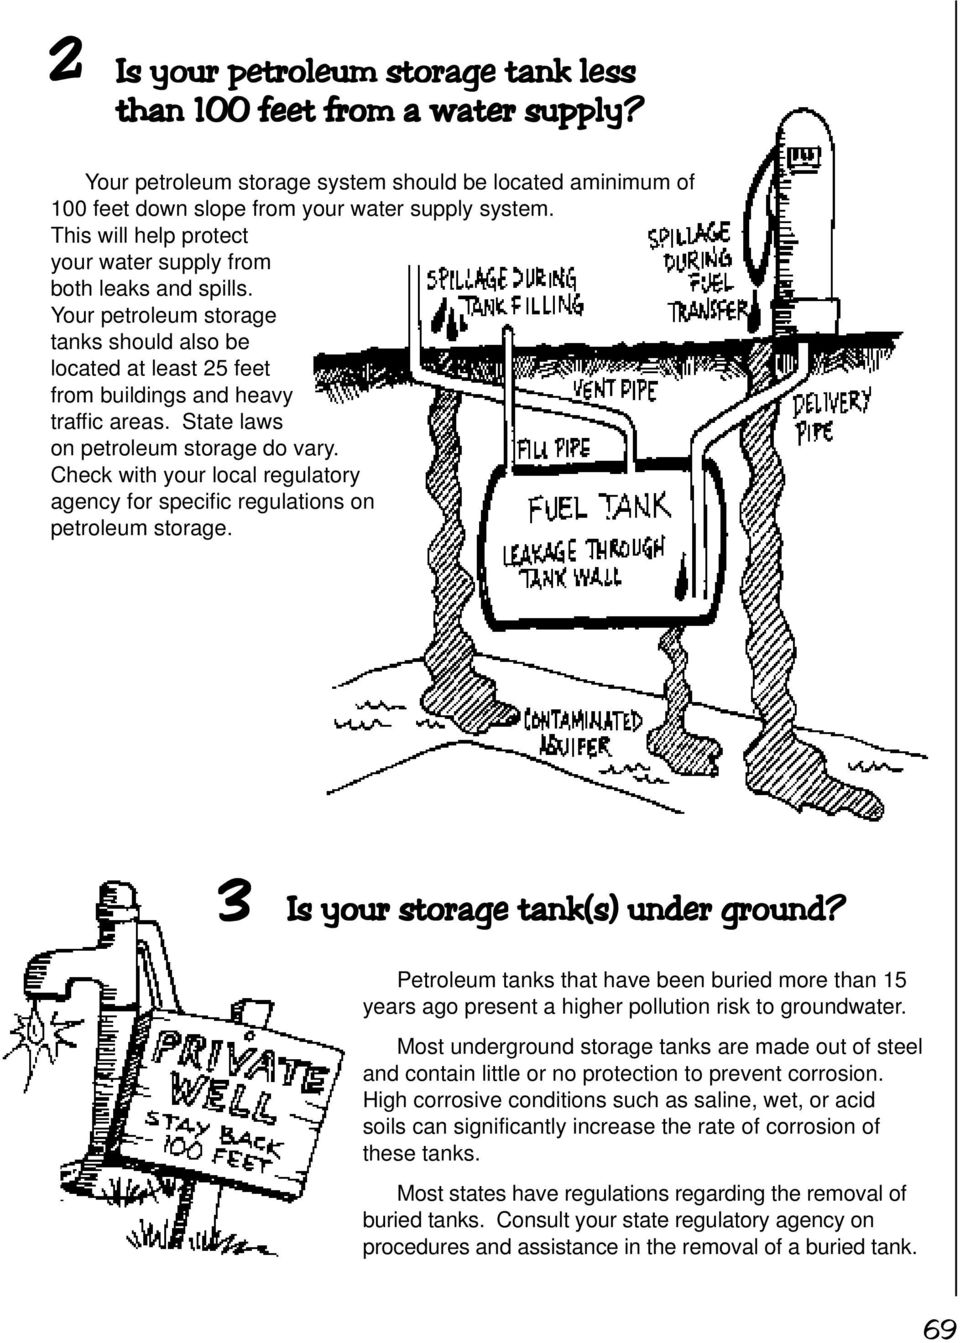 State laws on petroleum storage do vary. Check with your local regulatory agency for specific regulations on petroleum storage. 3 Is your storage tank(s) under ground?